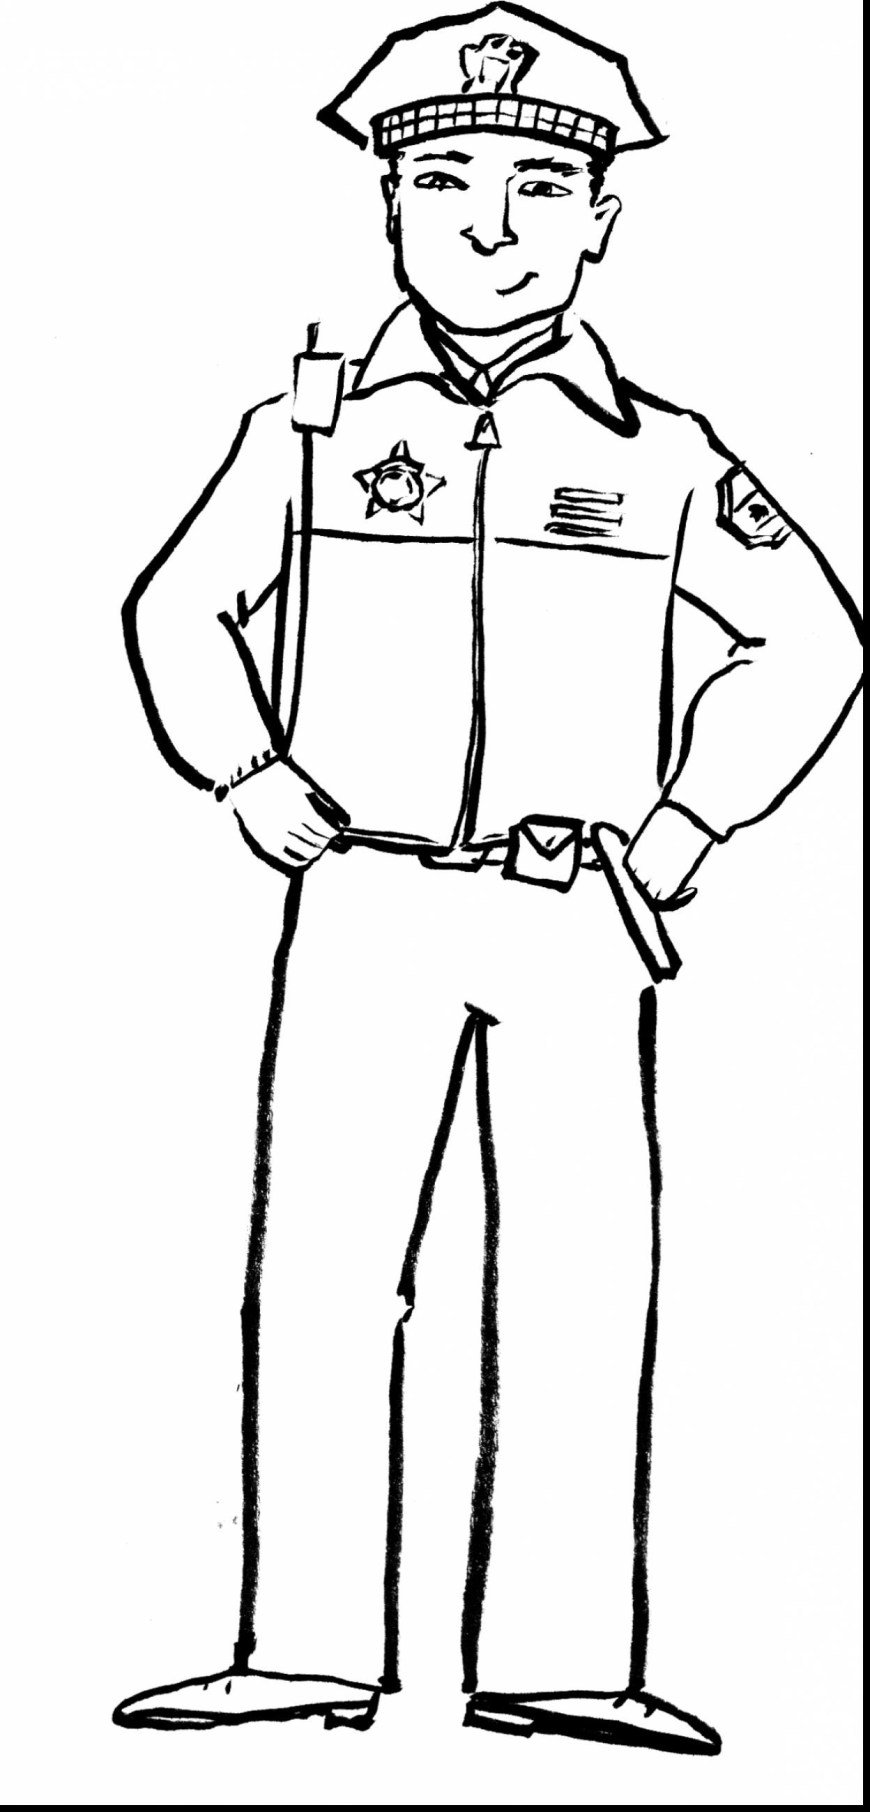 Police Officer Coloring Pages Police Officer Coloring Pages Printable Chronicles Network